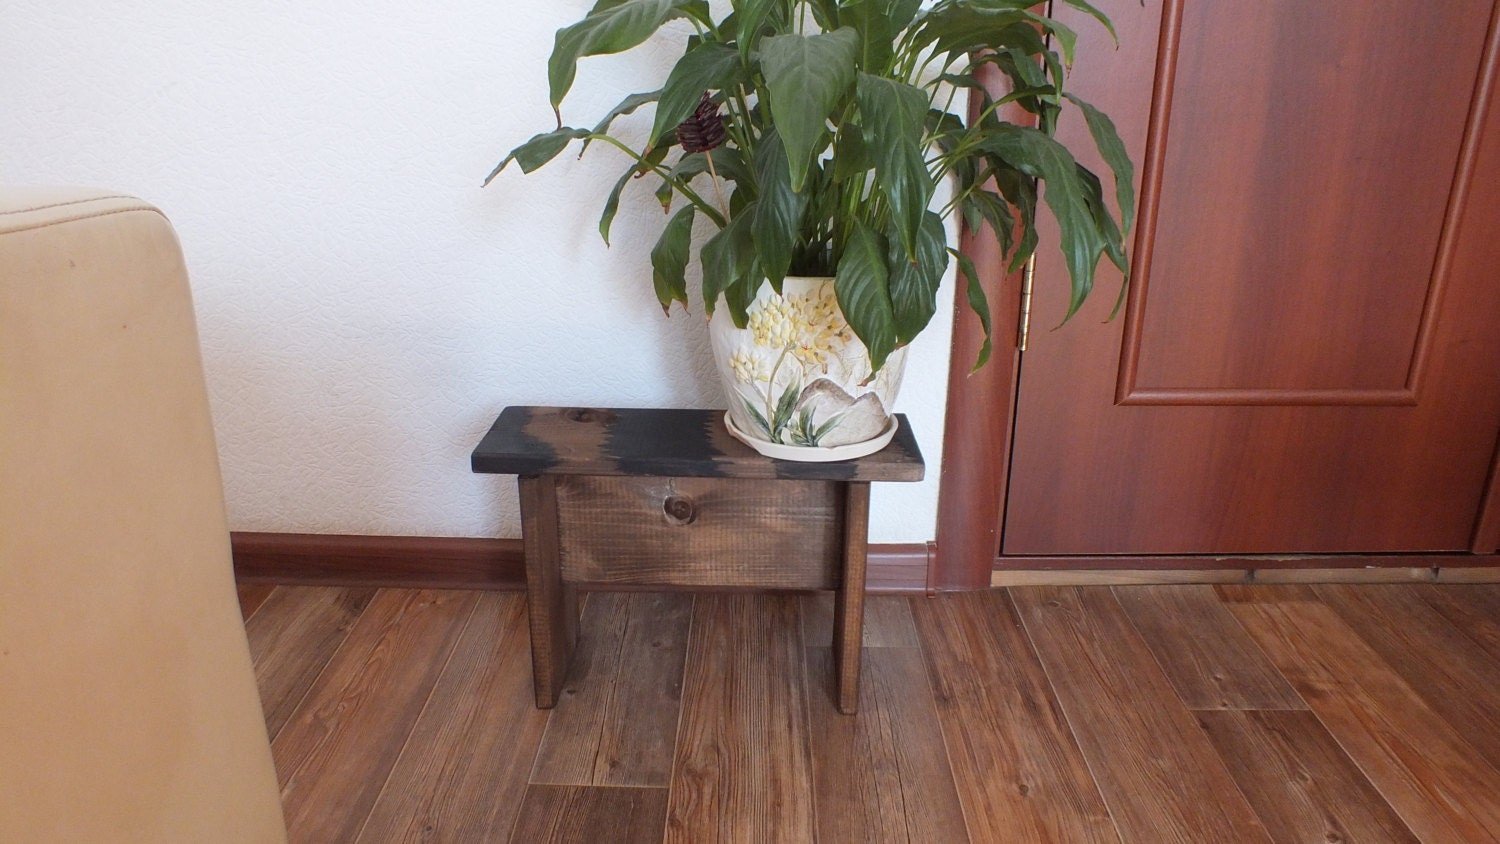 Plant stand wood plant stand indoor plant stand small Plant stands for indoors